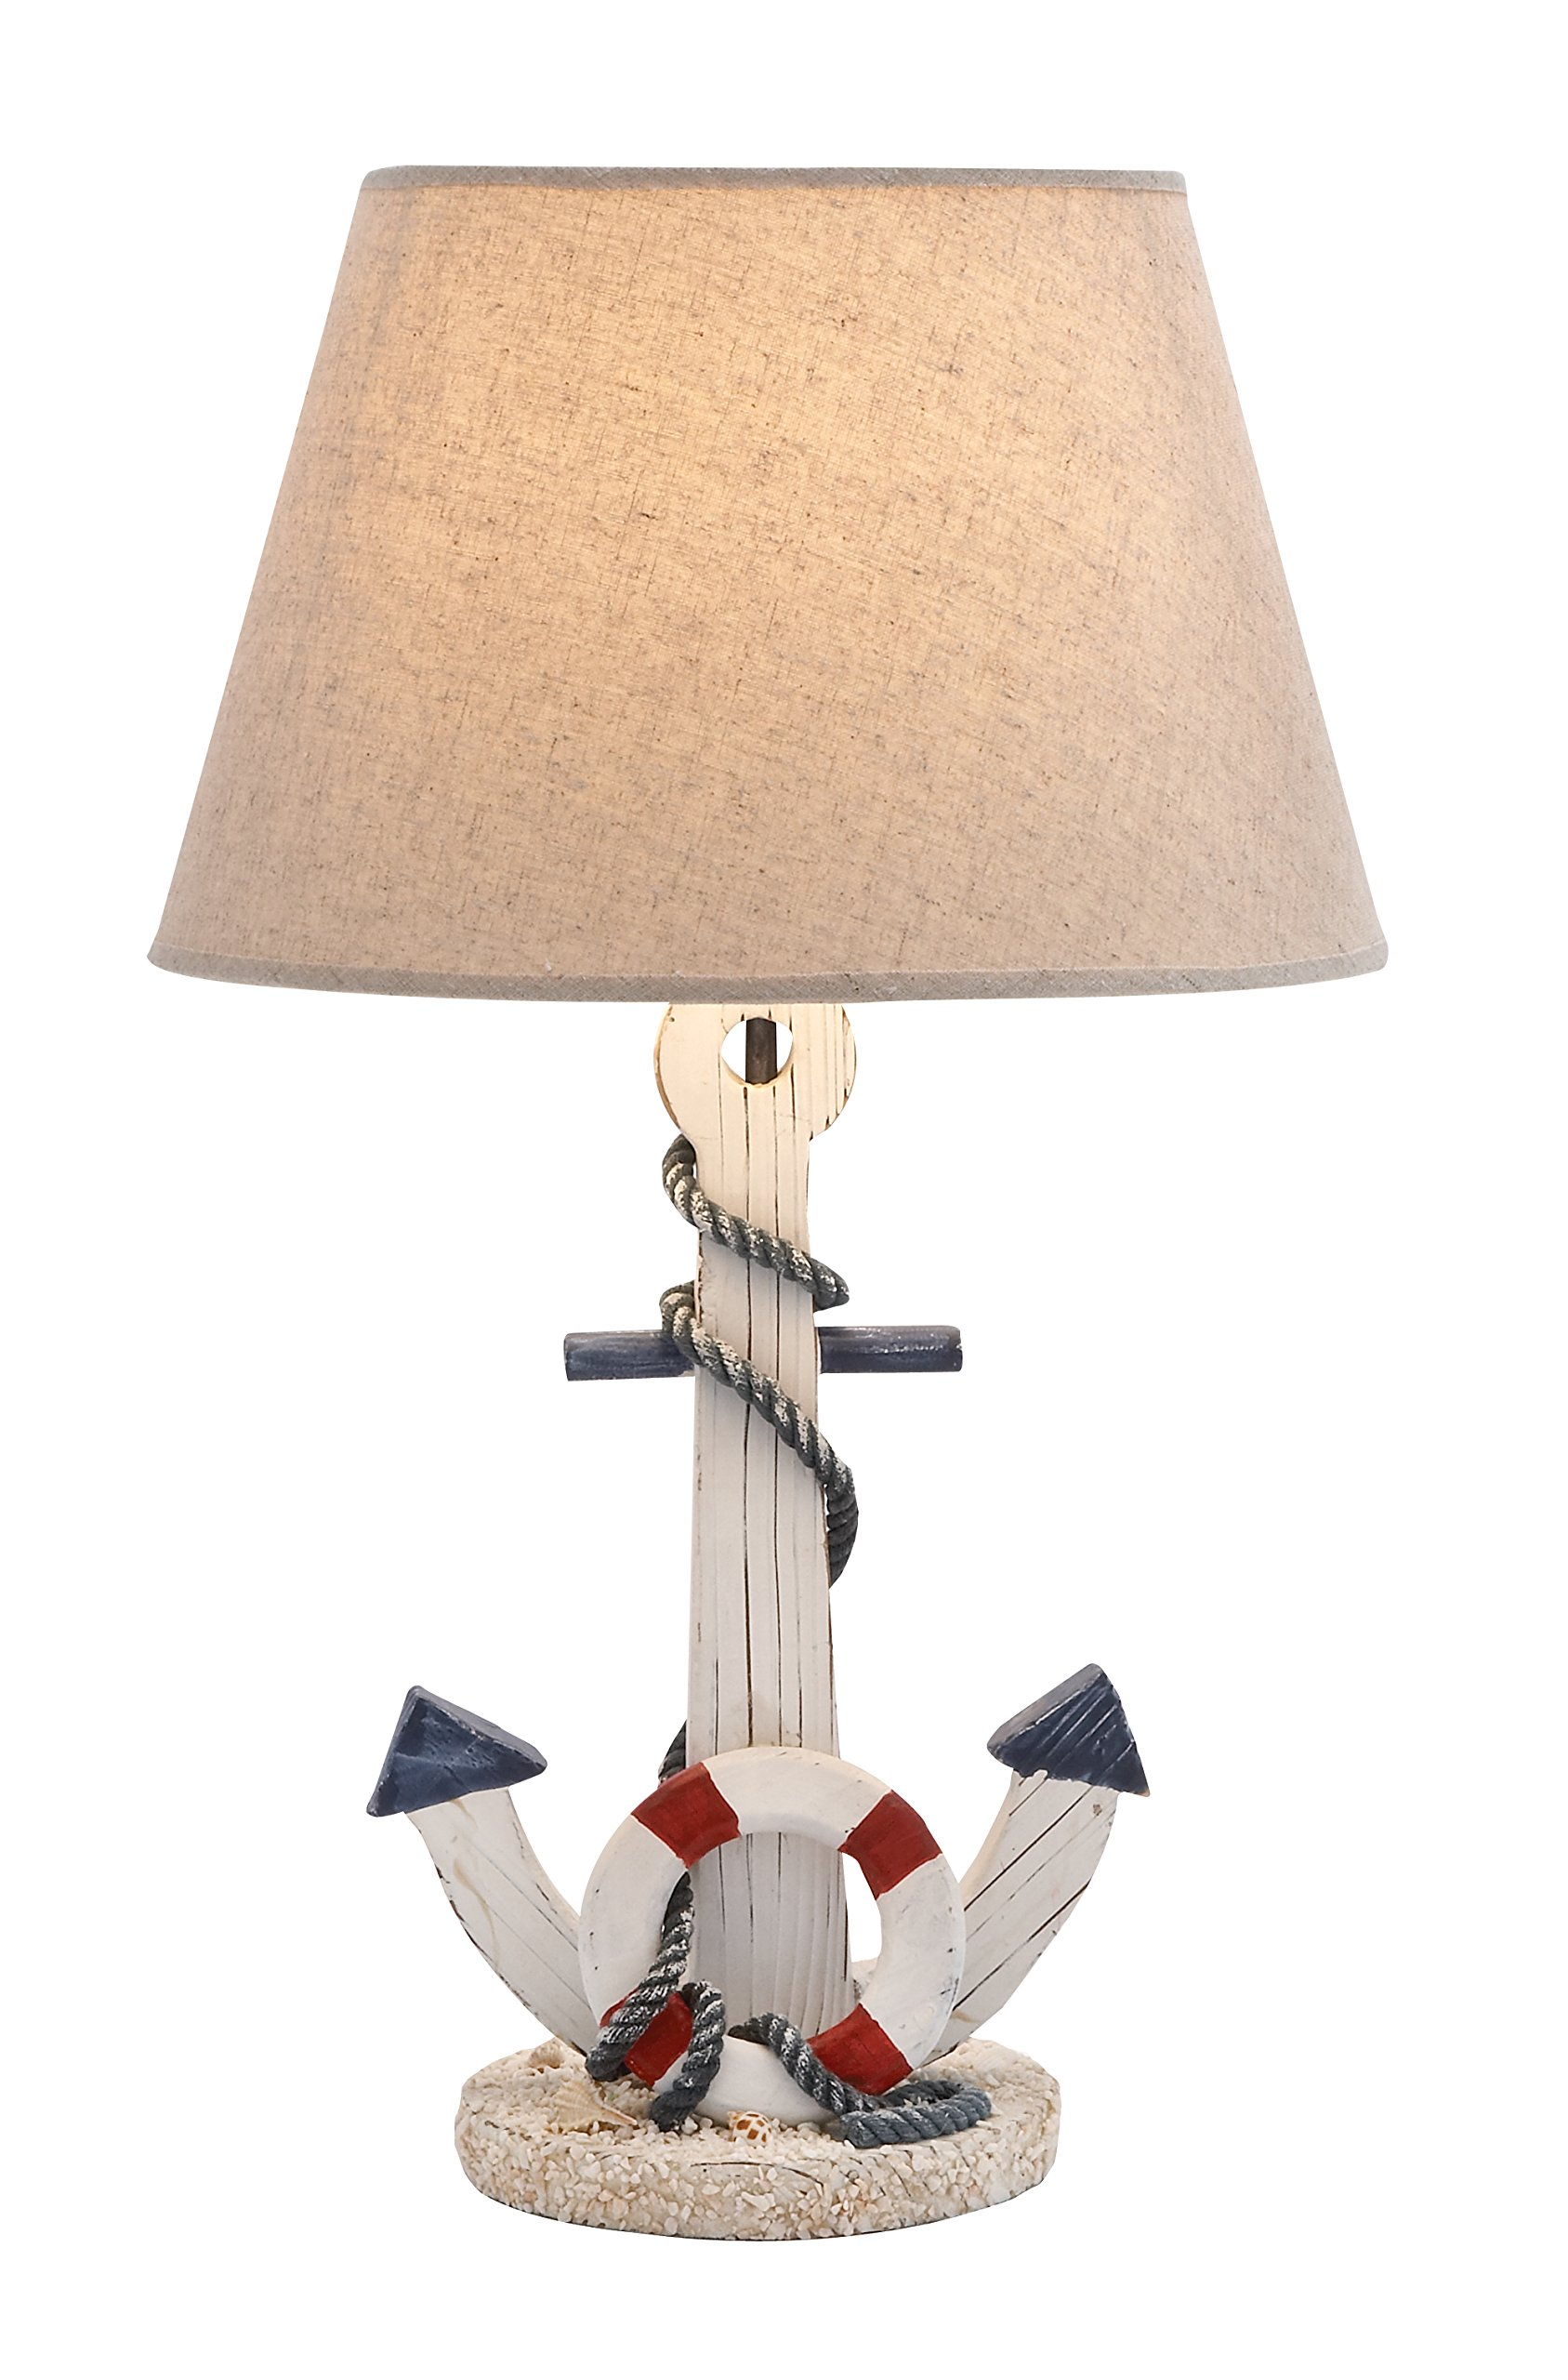 Deco 79 28755 Wood Anchor Table lamp 23'' H